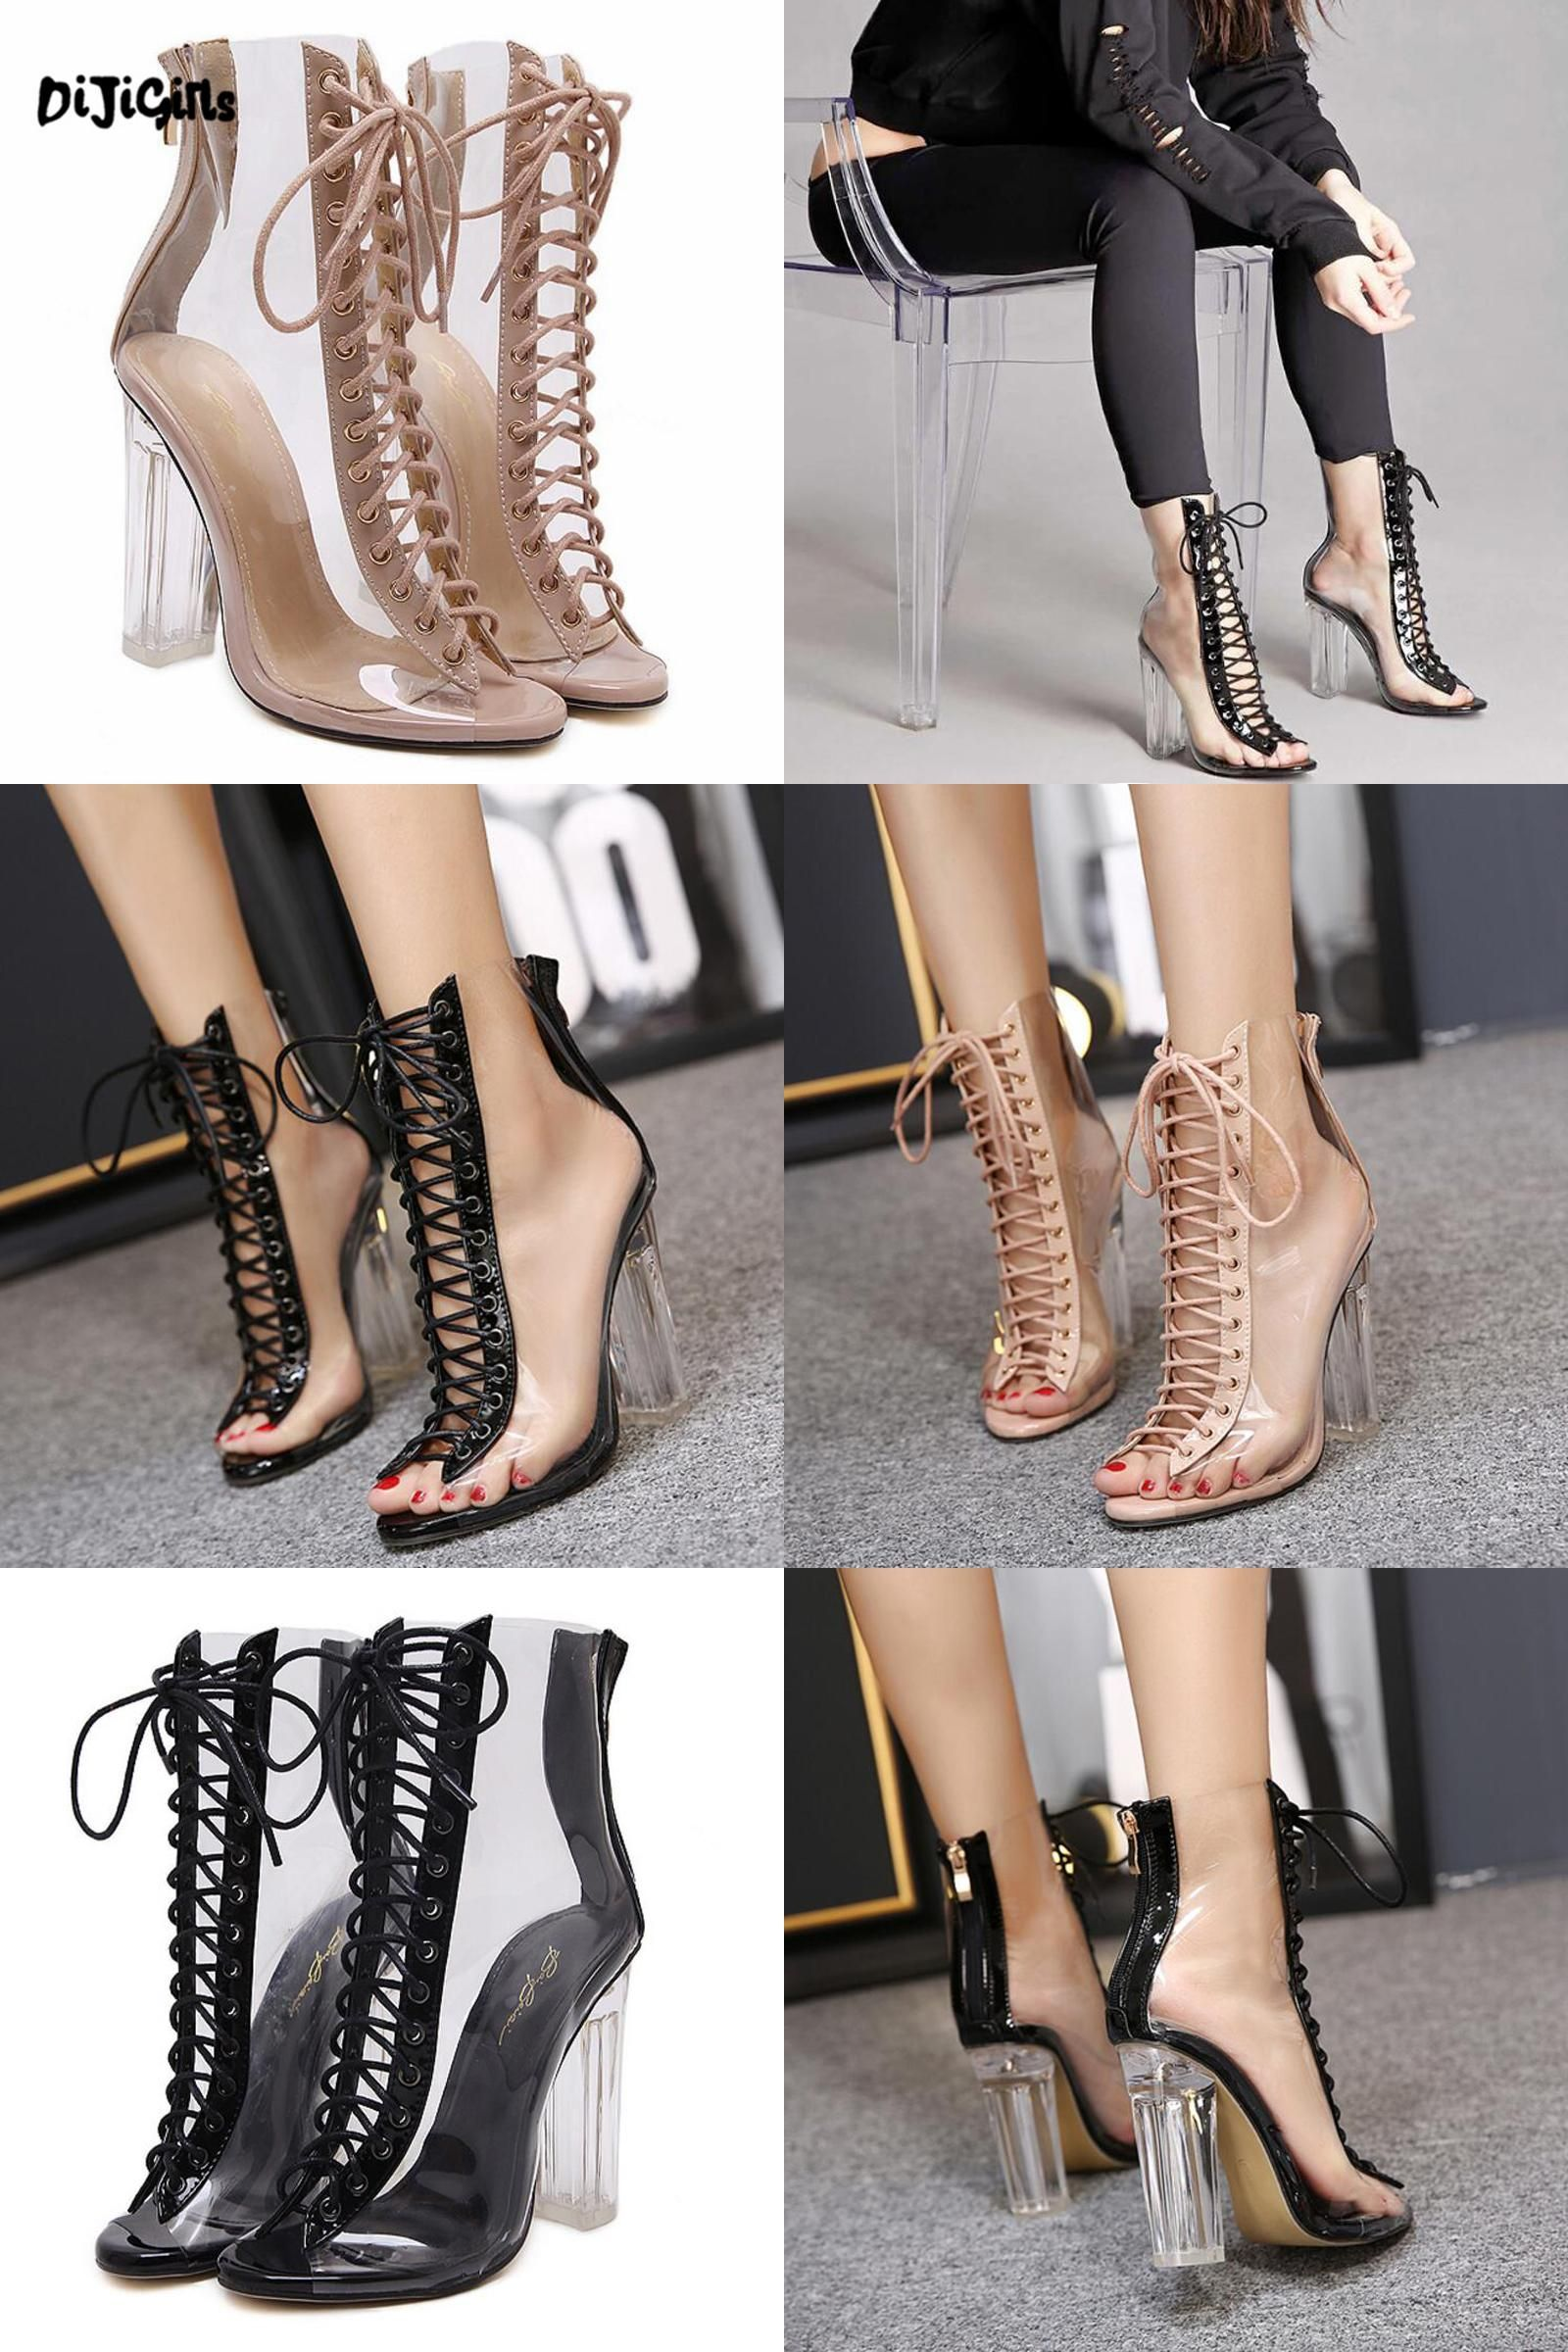 72b51c8b5ea7  Visit to Buy  Women Gladiator Sandals PVC Clear Block High Heel  Transparent Boots Lace